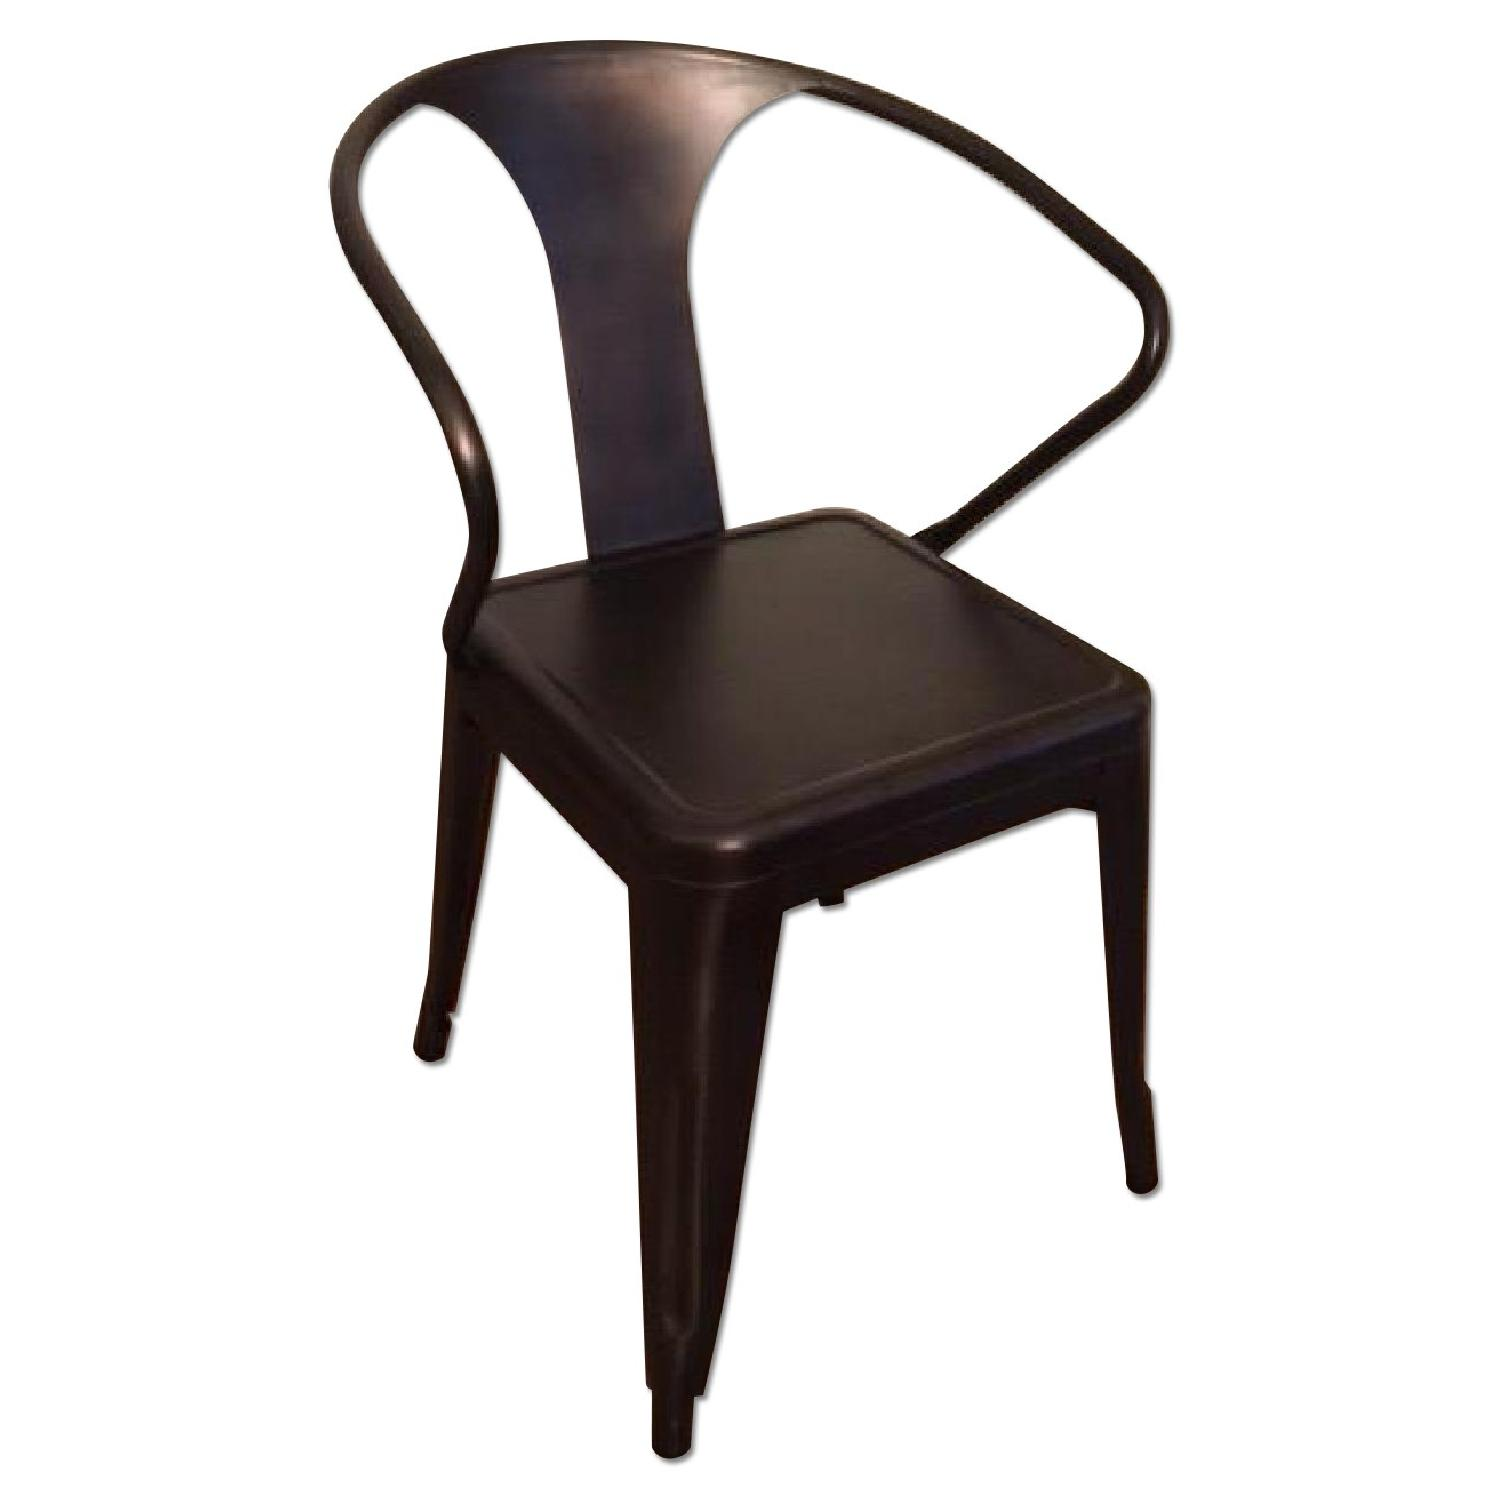 Vintage Tabouret Stacking Chairs - image-0